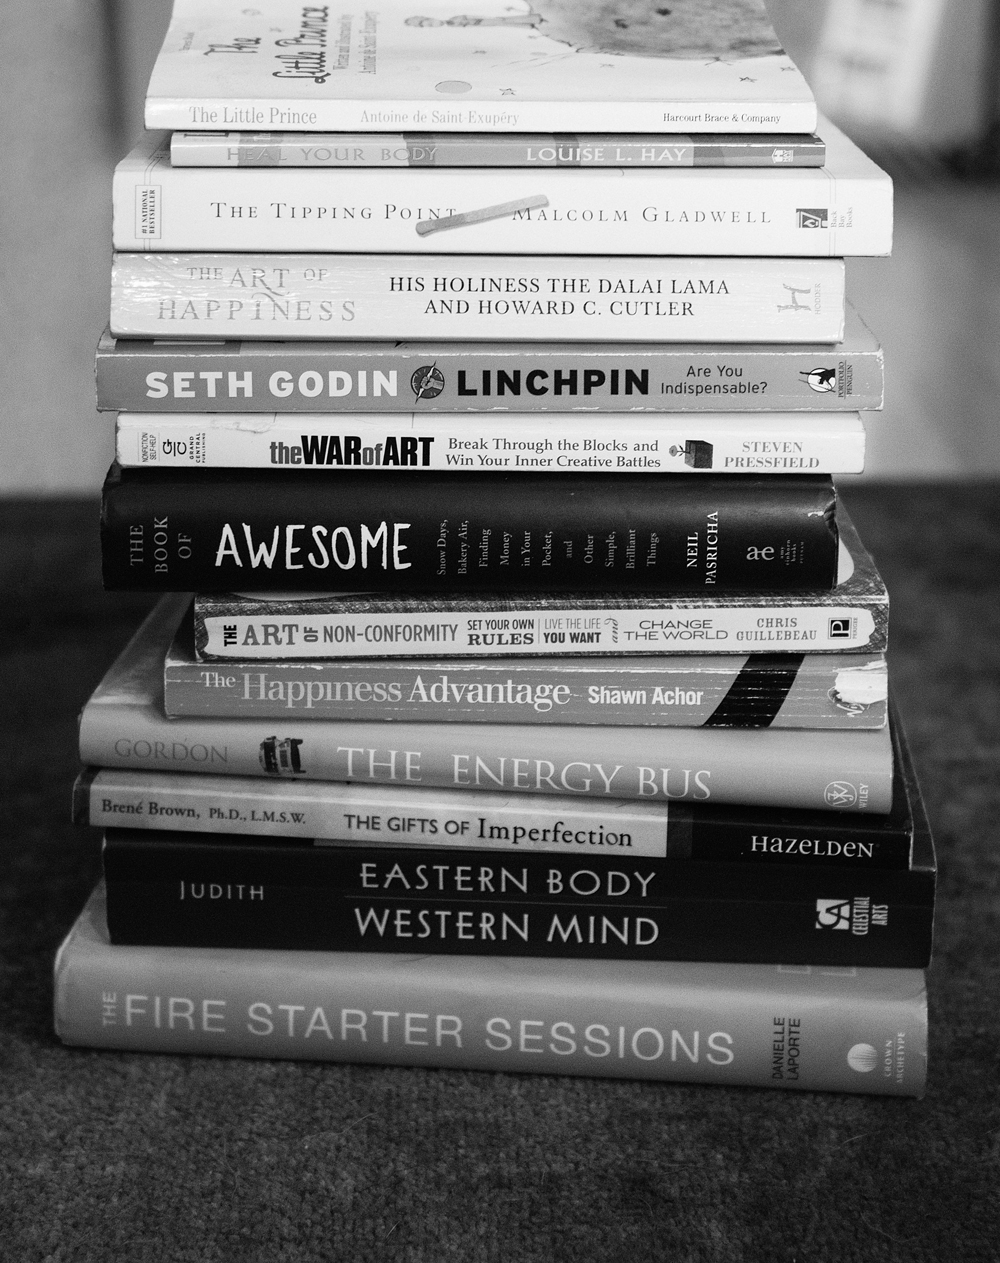 JaCKI's FAVORITE BOOKS :  THe little prince ,  heal your body ,  the tipping point ,  the art of happiness ,  linchpin ,  the war of art ,  the book of awesome ,  the art of non-conformity ,  the happiness advantage ,  the energy bus ,  the gifts of imperfection ,  eastern body western mind ,  the fire starter sessions